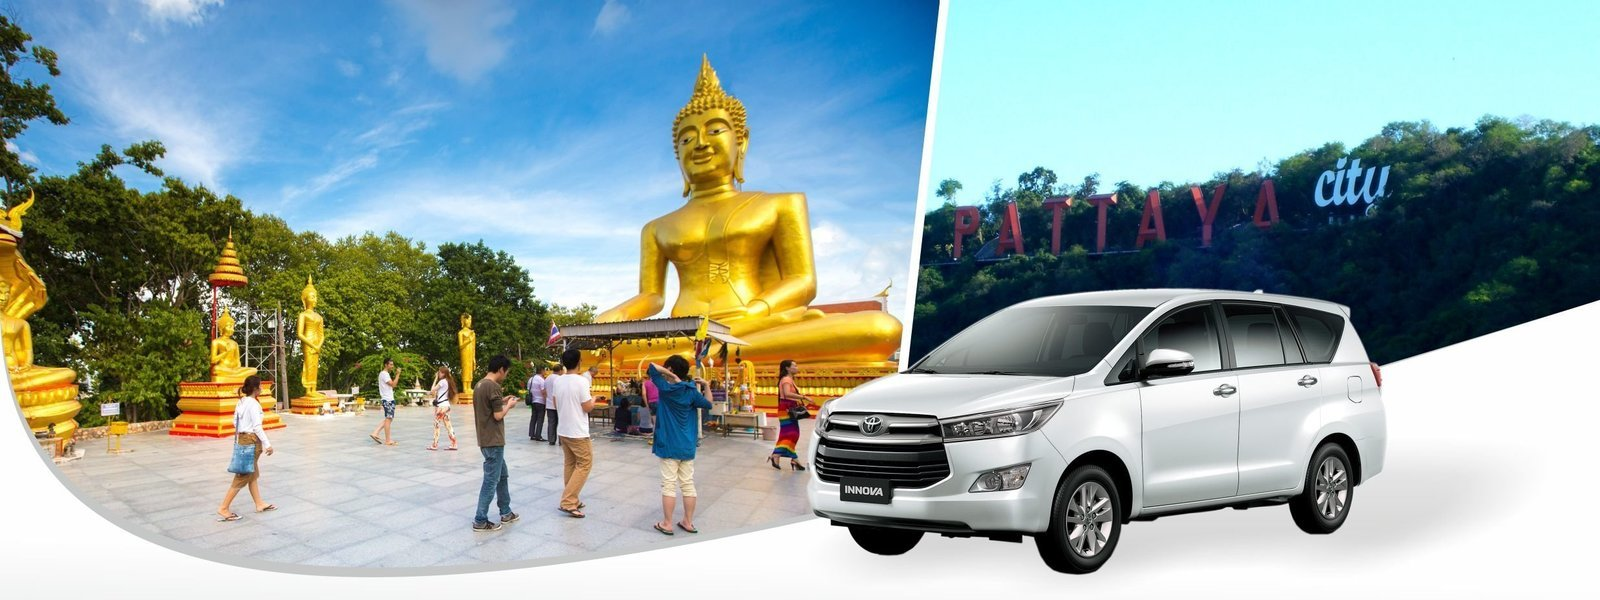 Swarnabhumi Airport To DMK Airport Transfer (BY Innova) PRIVATE - Tour